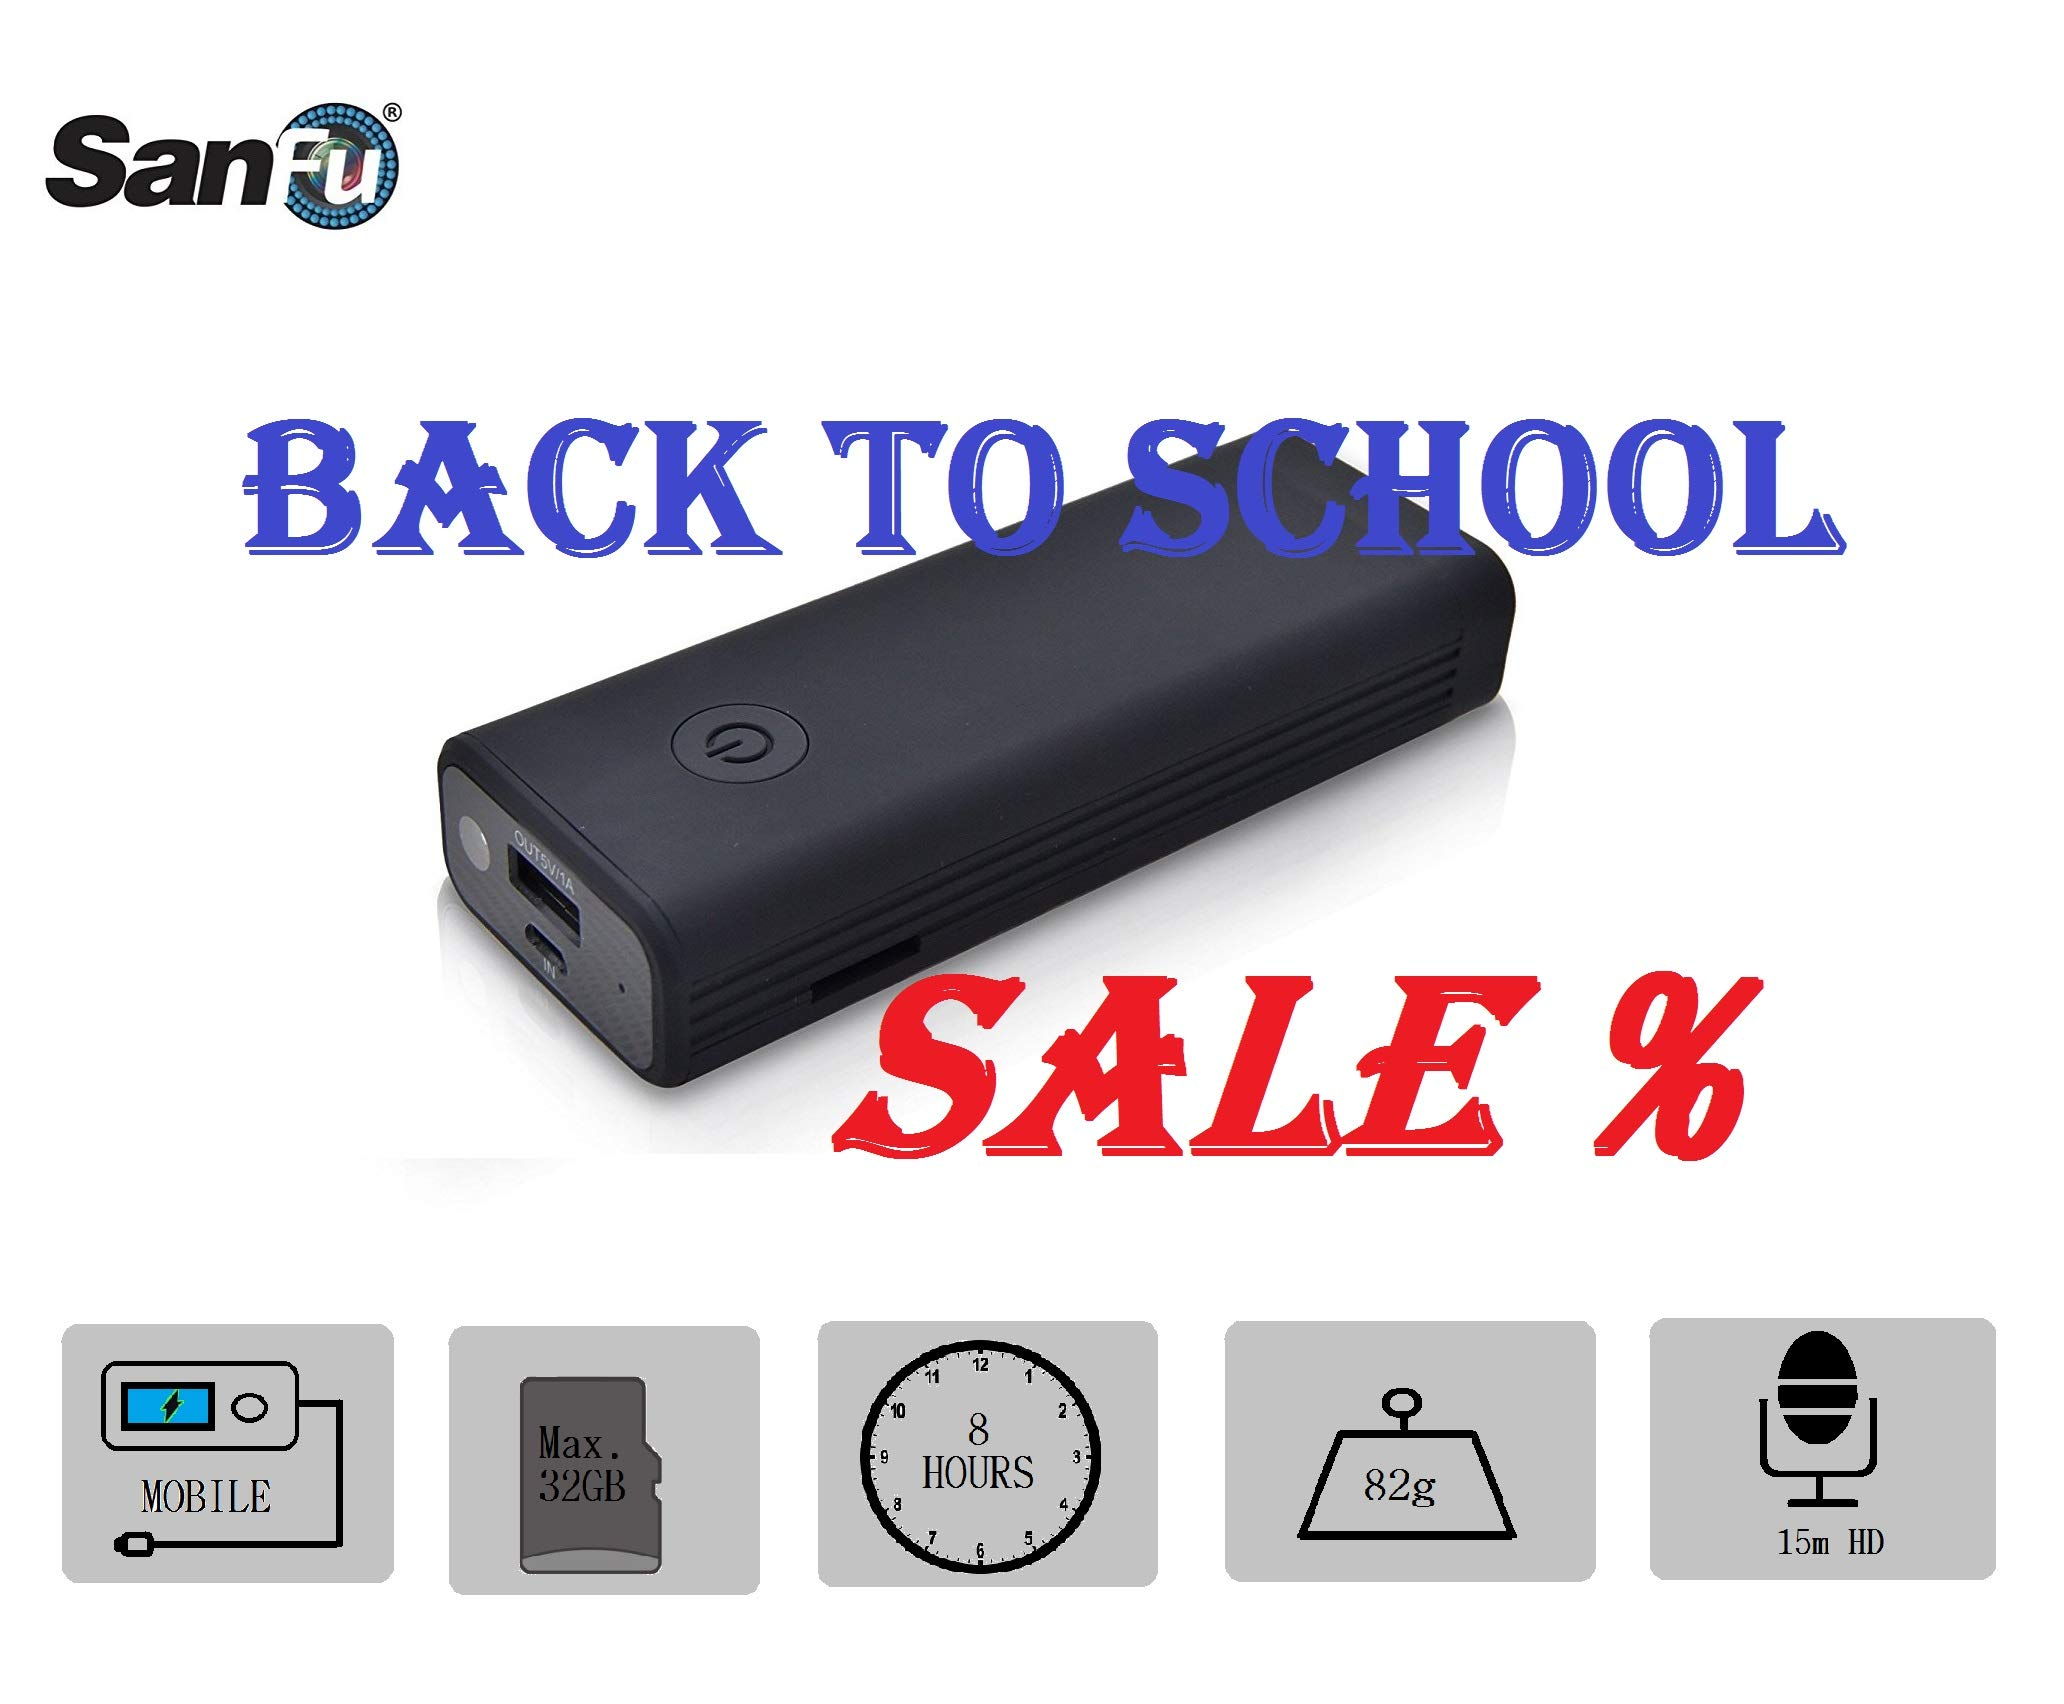 SanFu HD Power Bank Hidden Camera, Including Video/Audio Recording, Flash Drive Function (Memory Card is NOT Included)